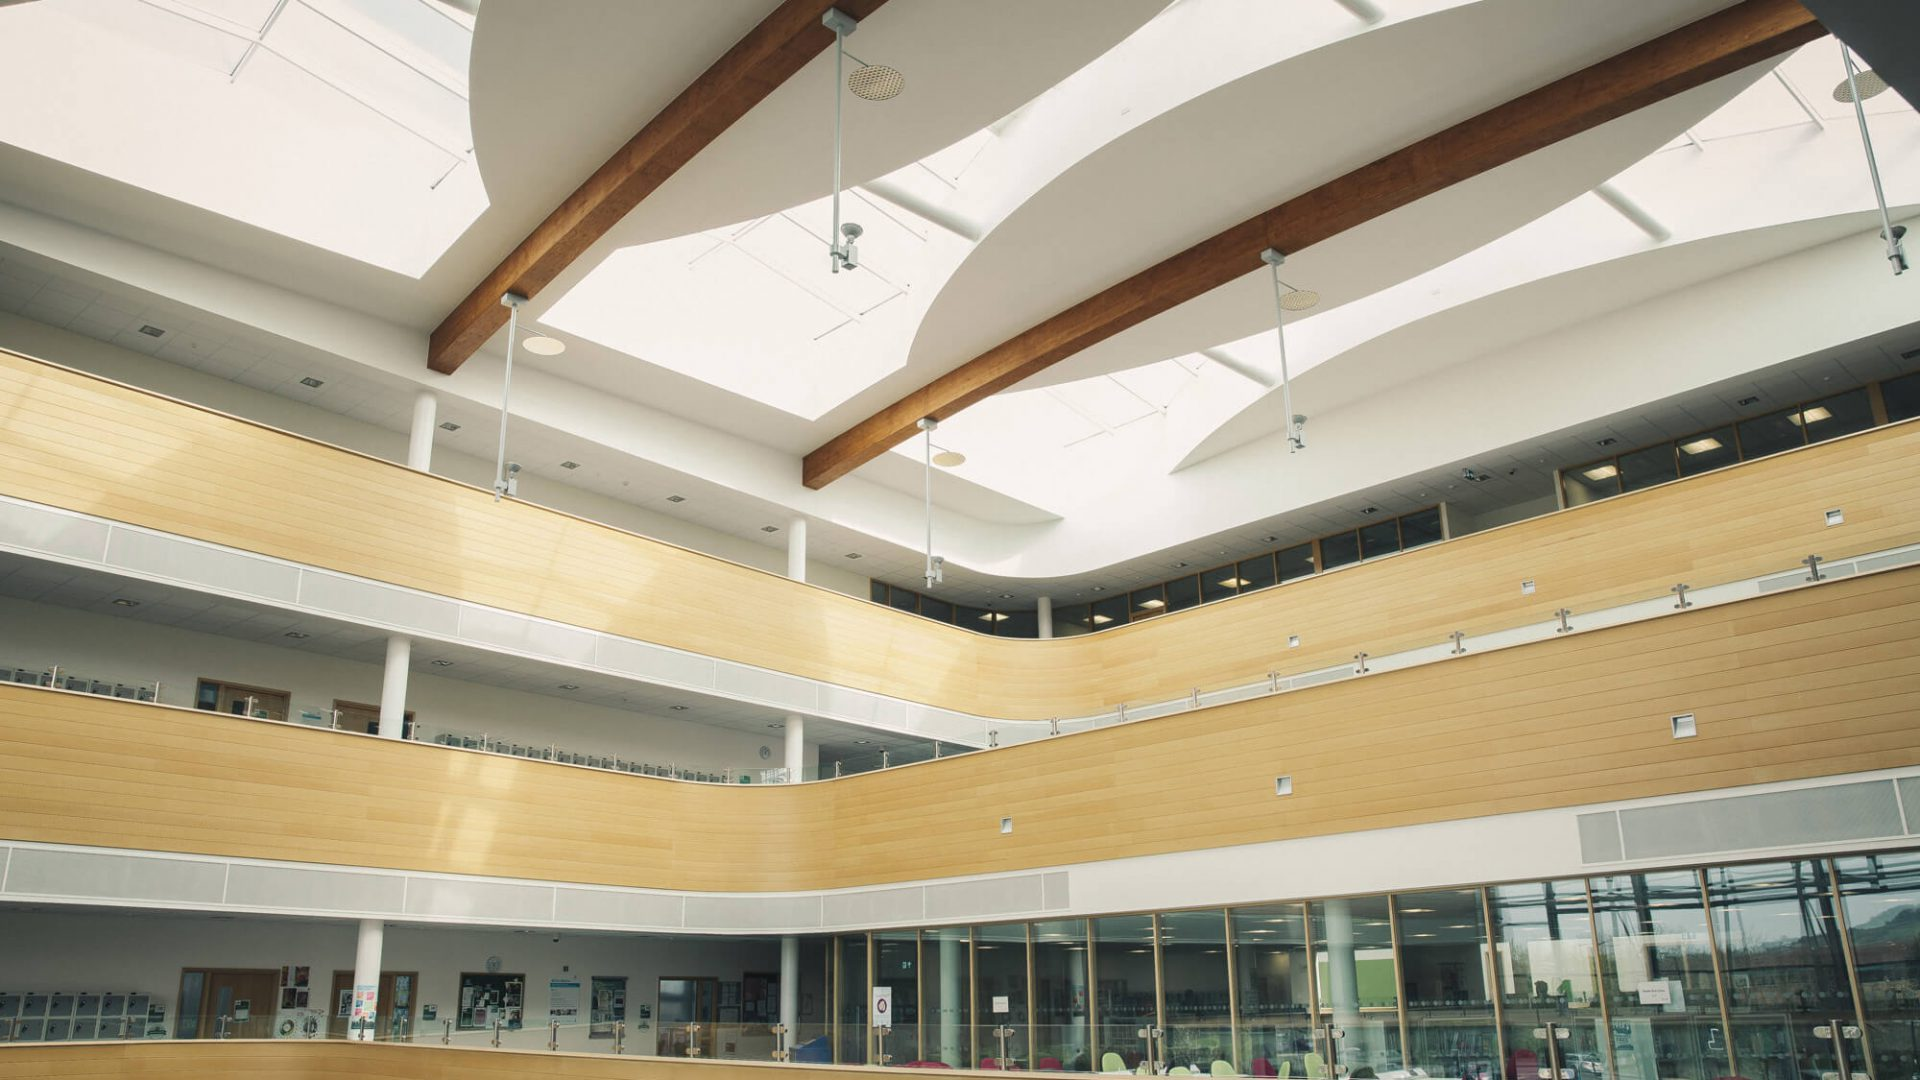 Inside of the South Bristol Skills Academy SBSA campus building